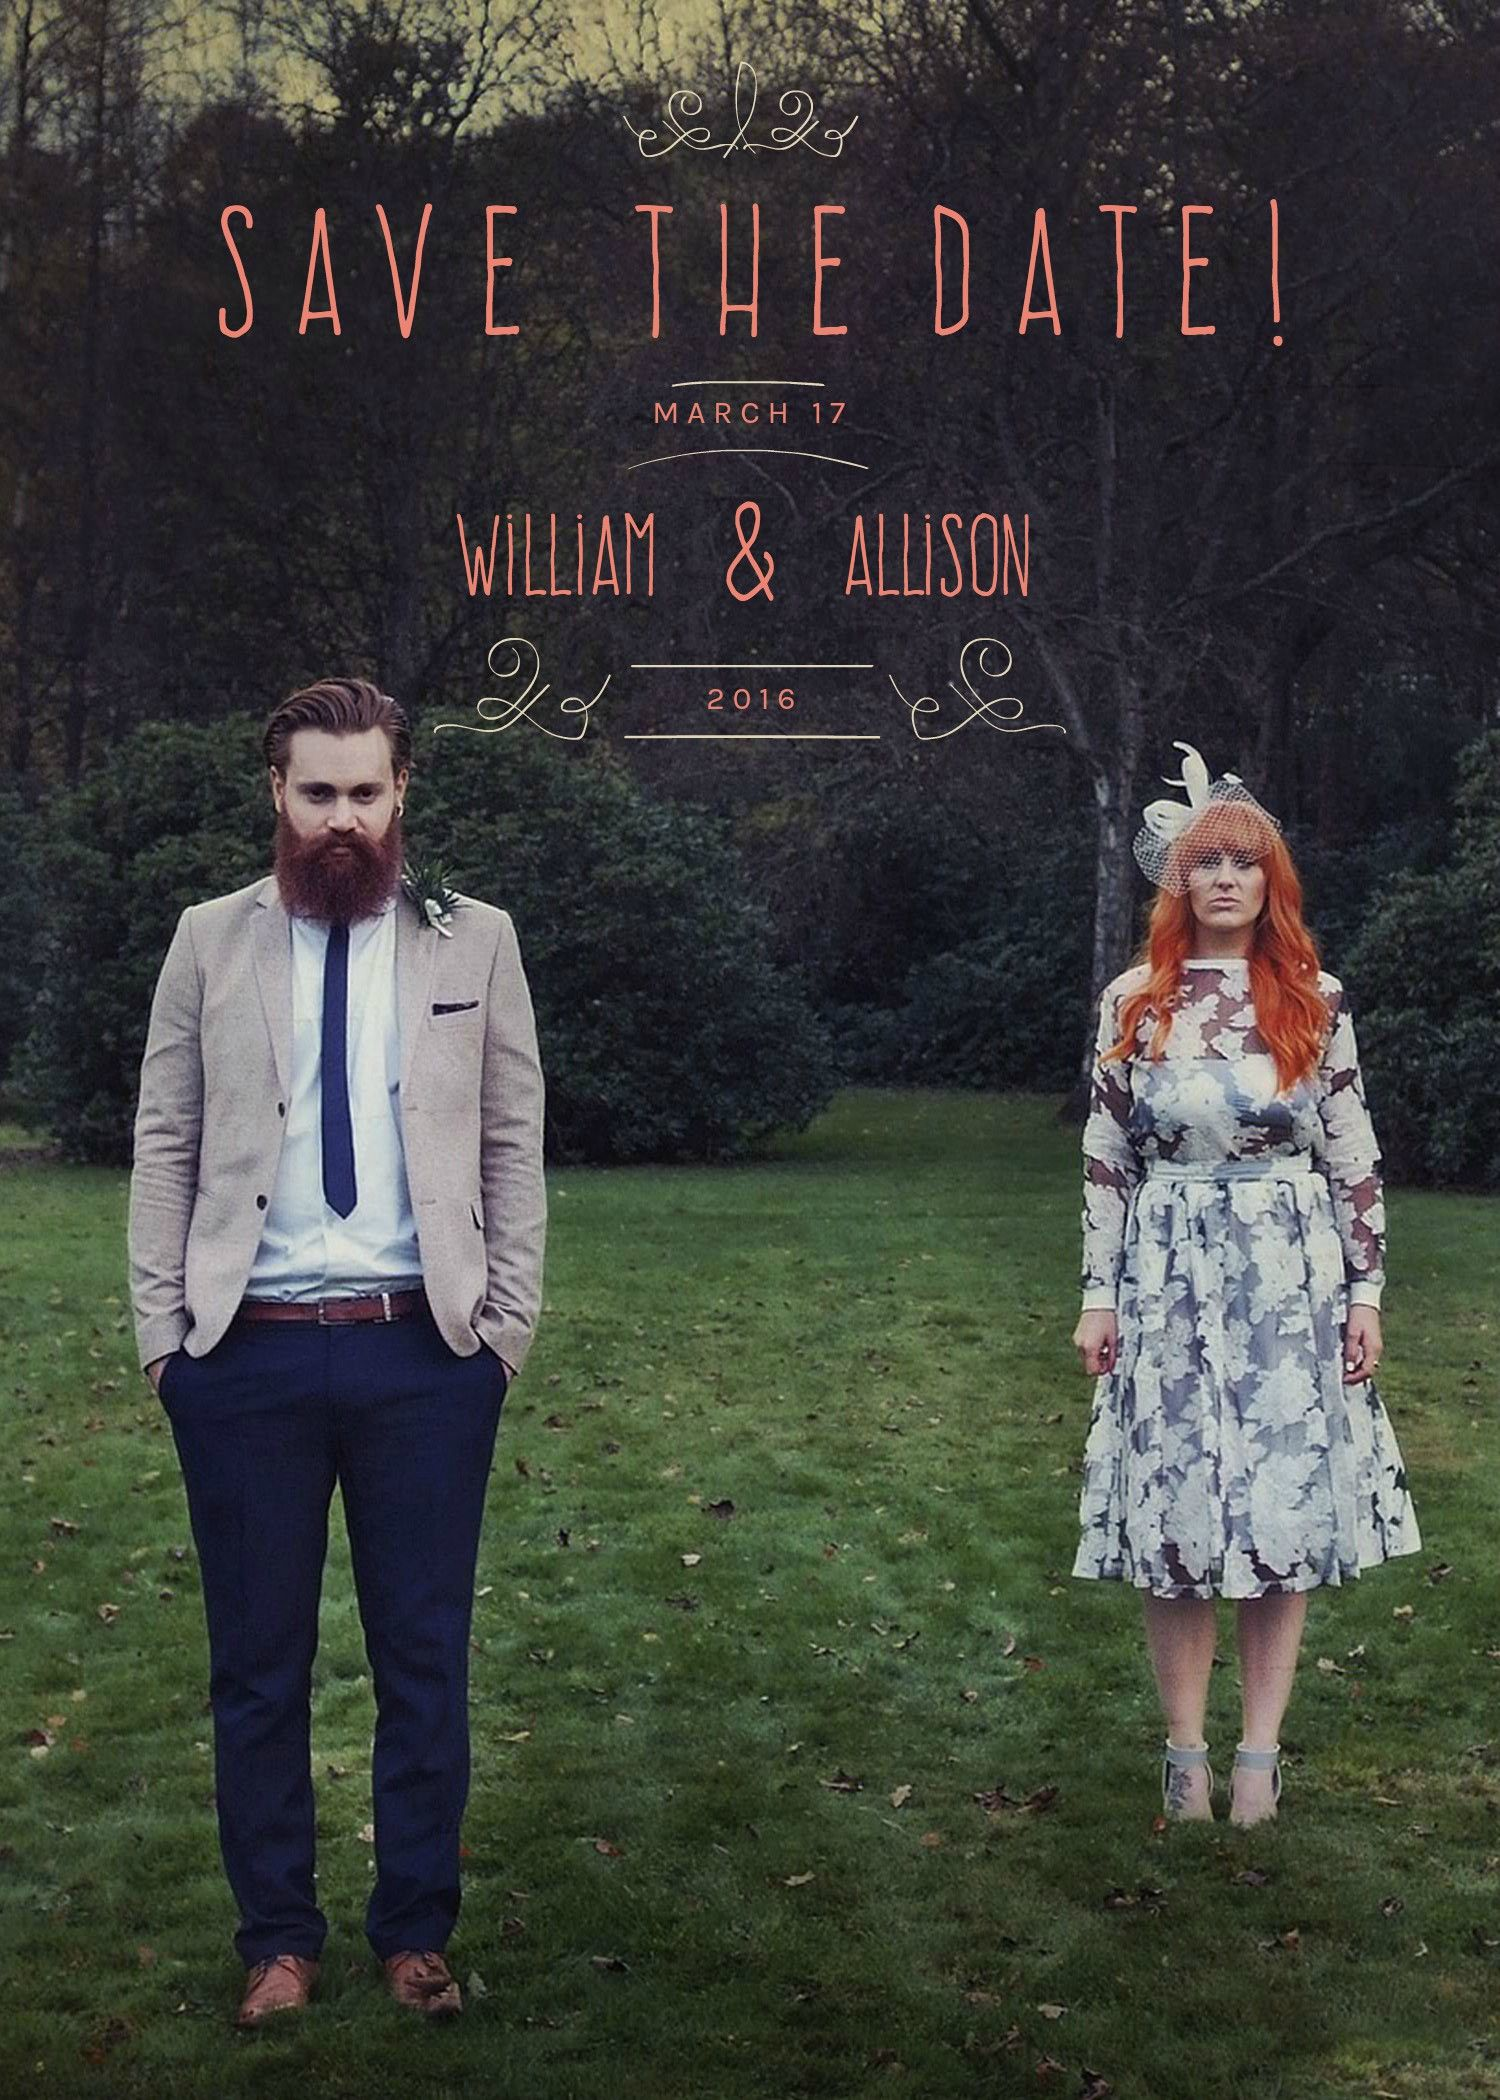 Design Your Own Save The Dates In Minutes With BeFunkys Design - Design your own save the date template